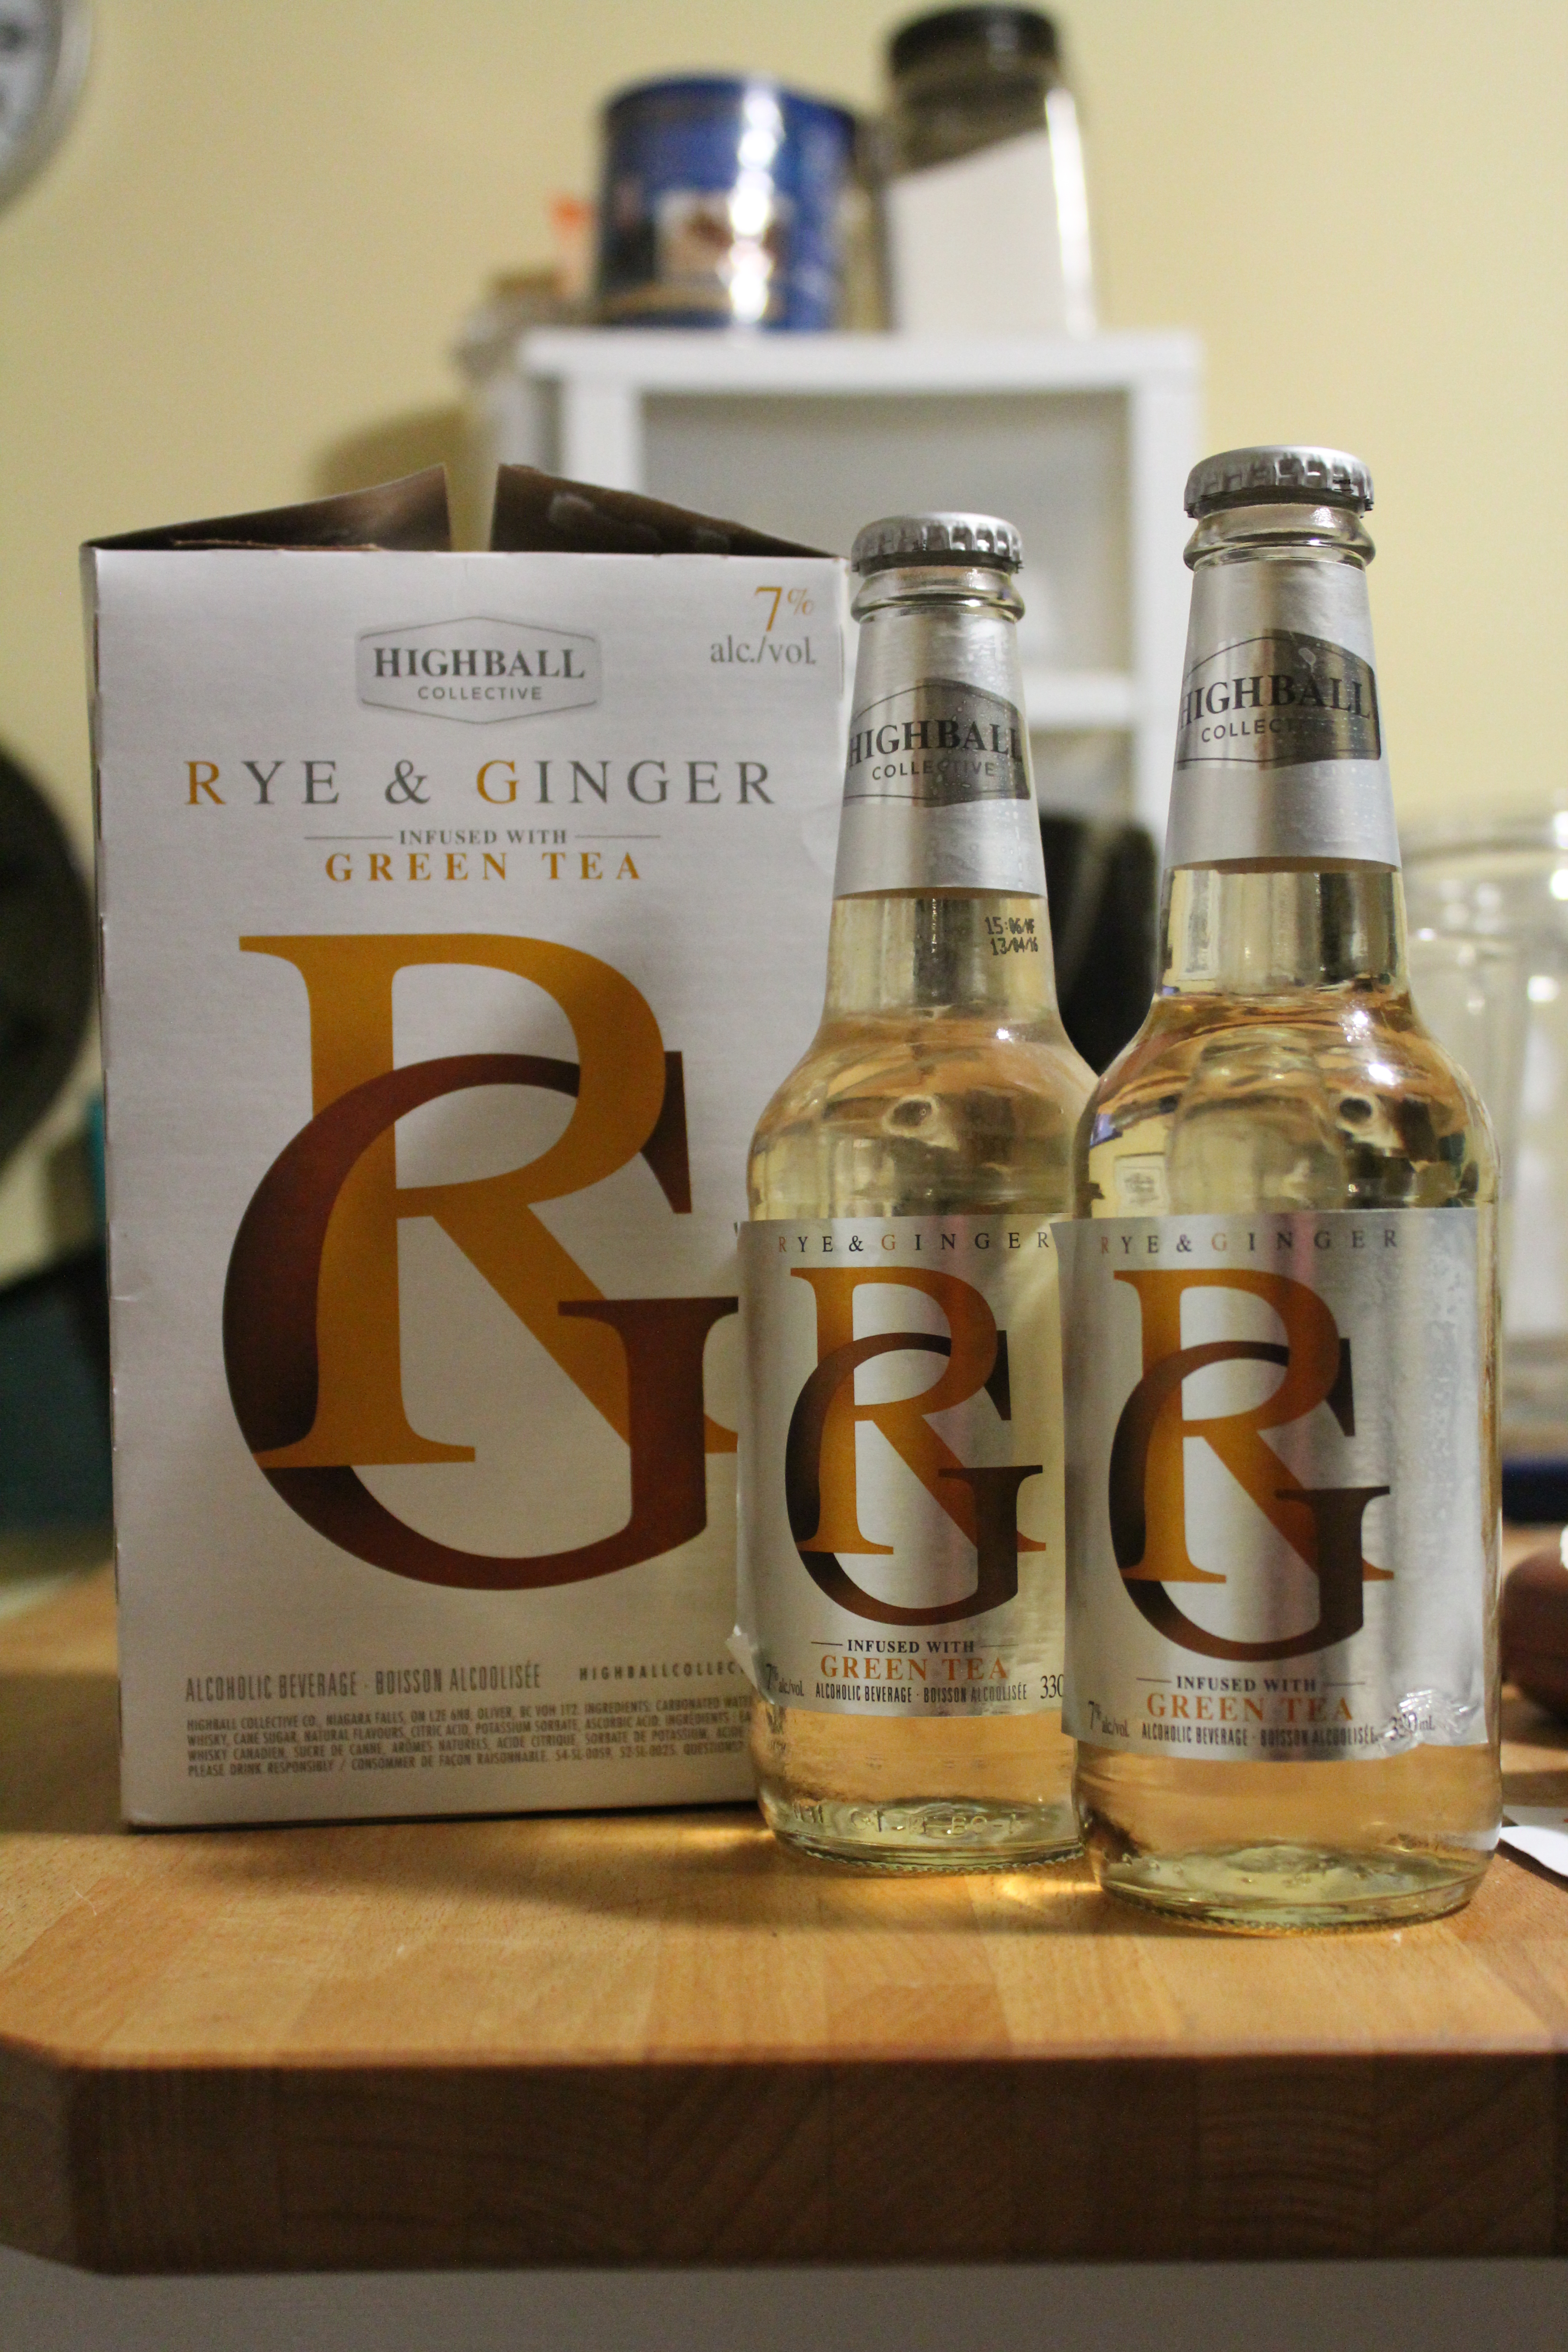 Highball Collective Green Tea Infused Rye & Ginger with Ryan